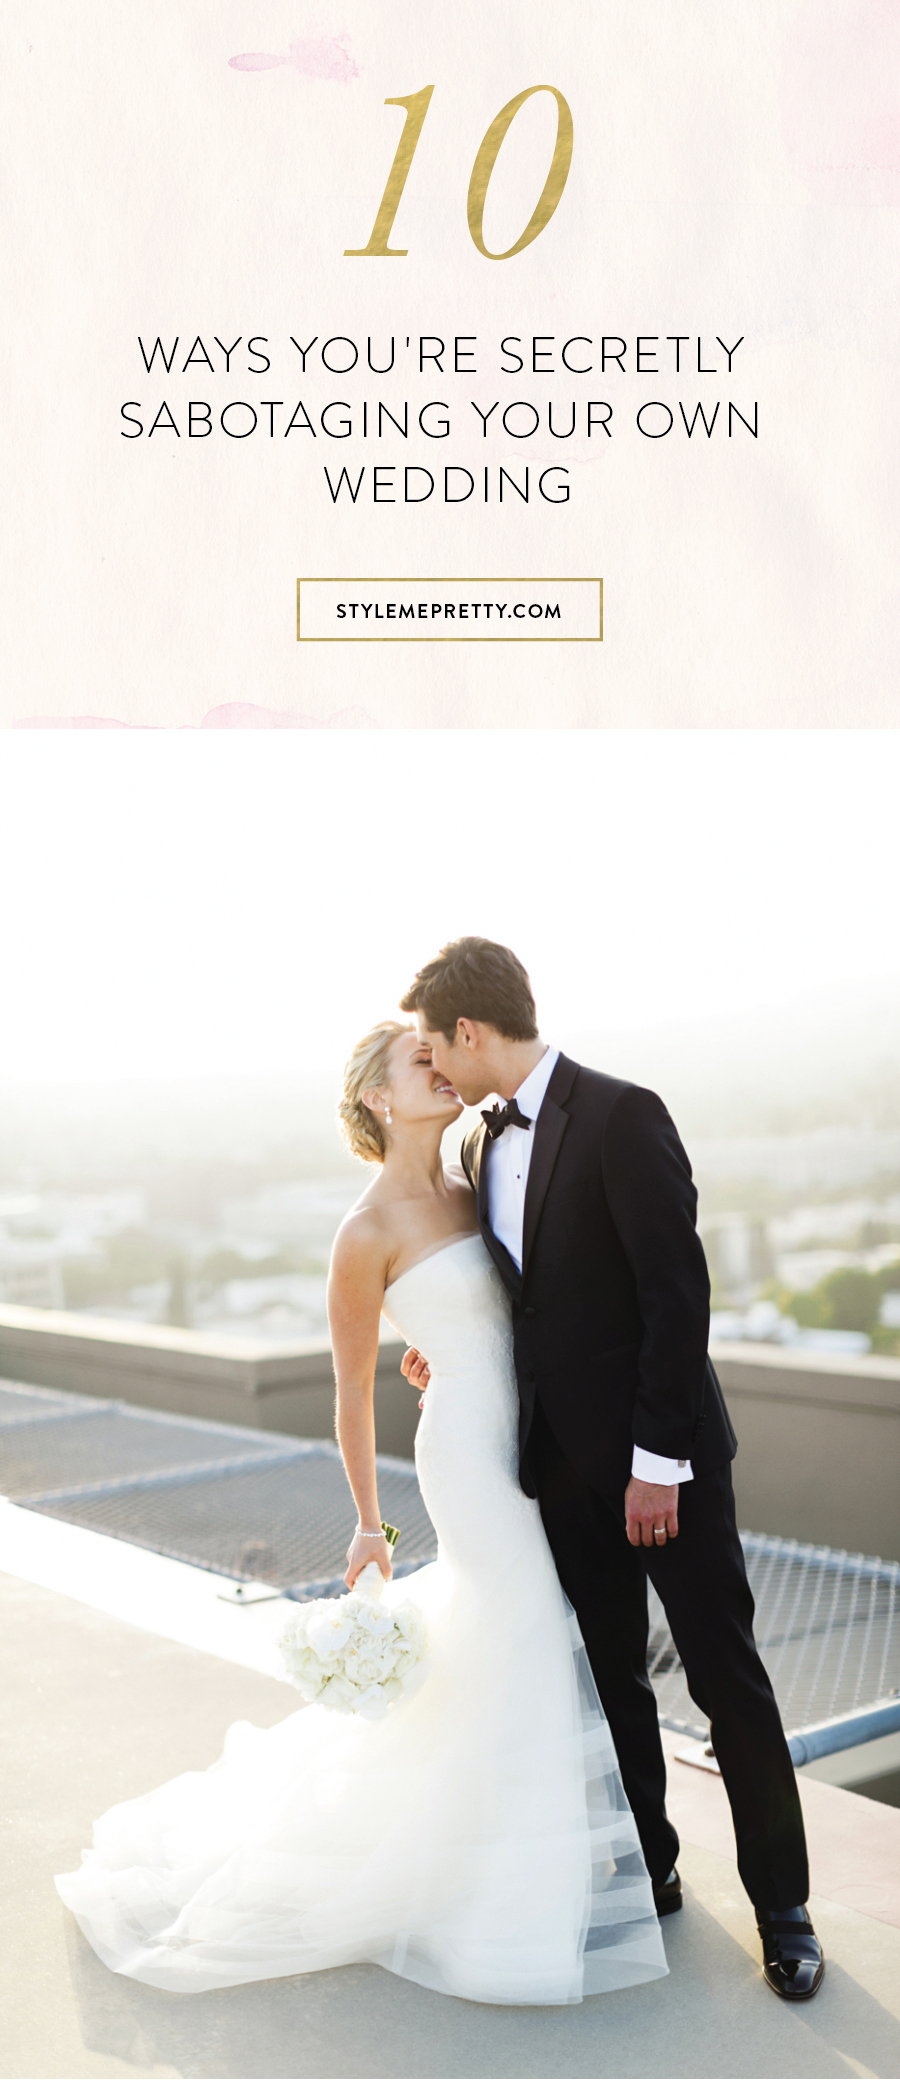 PInterest_Text_Overlay_3_Weddings-05.jpg